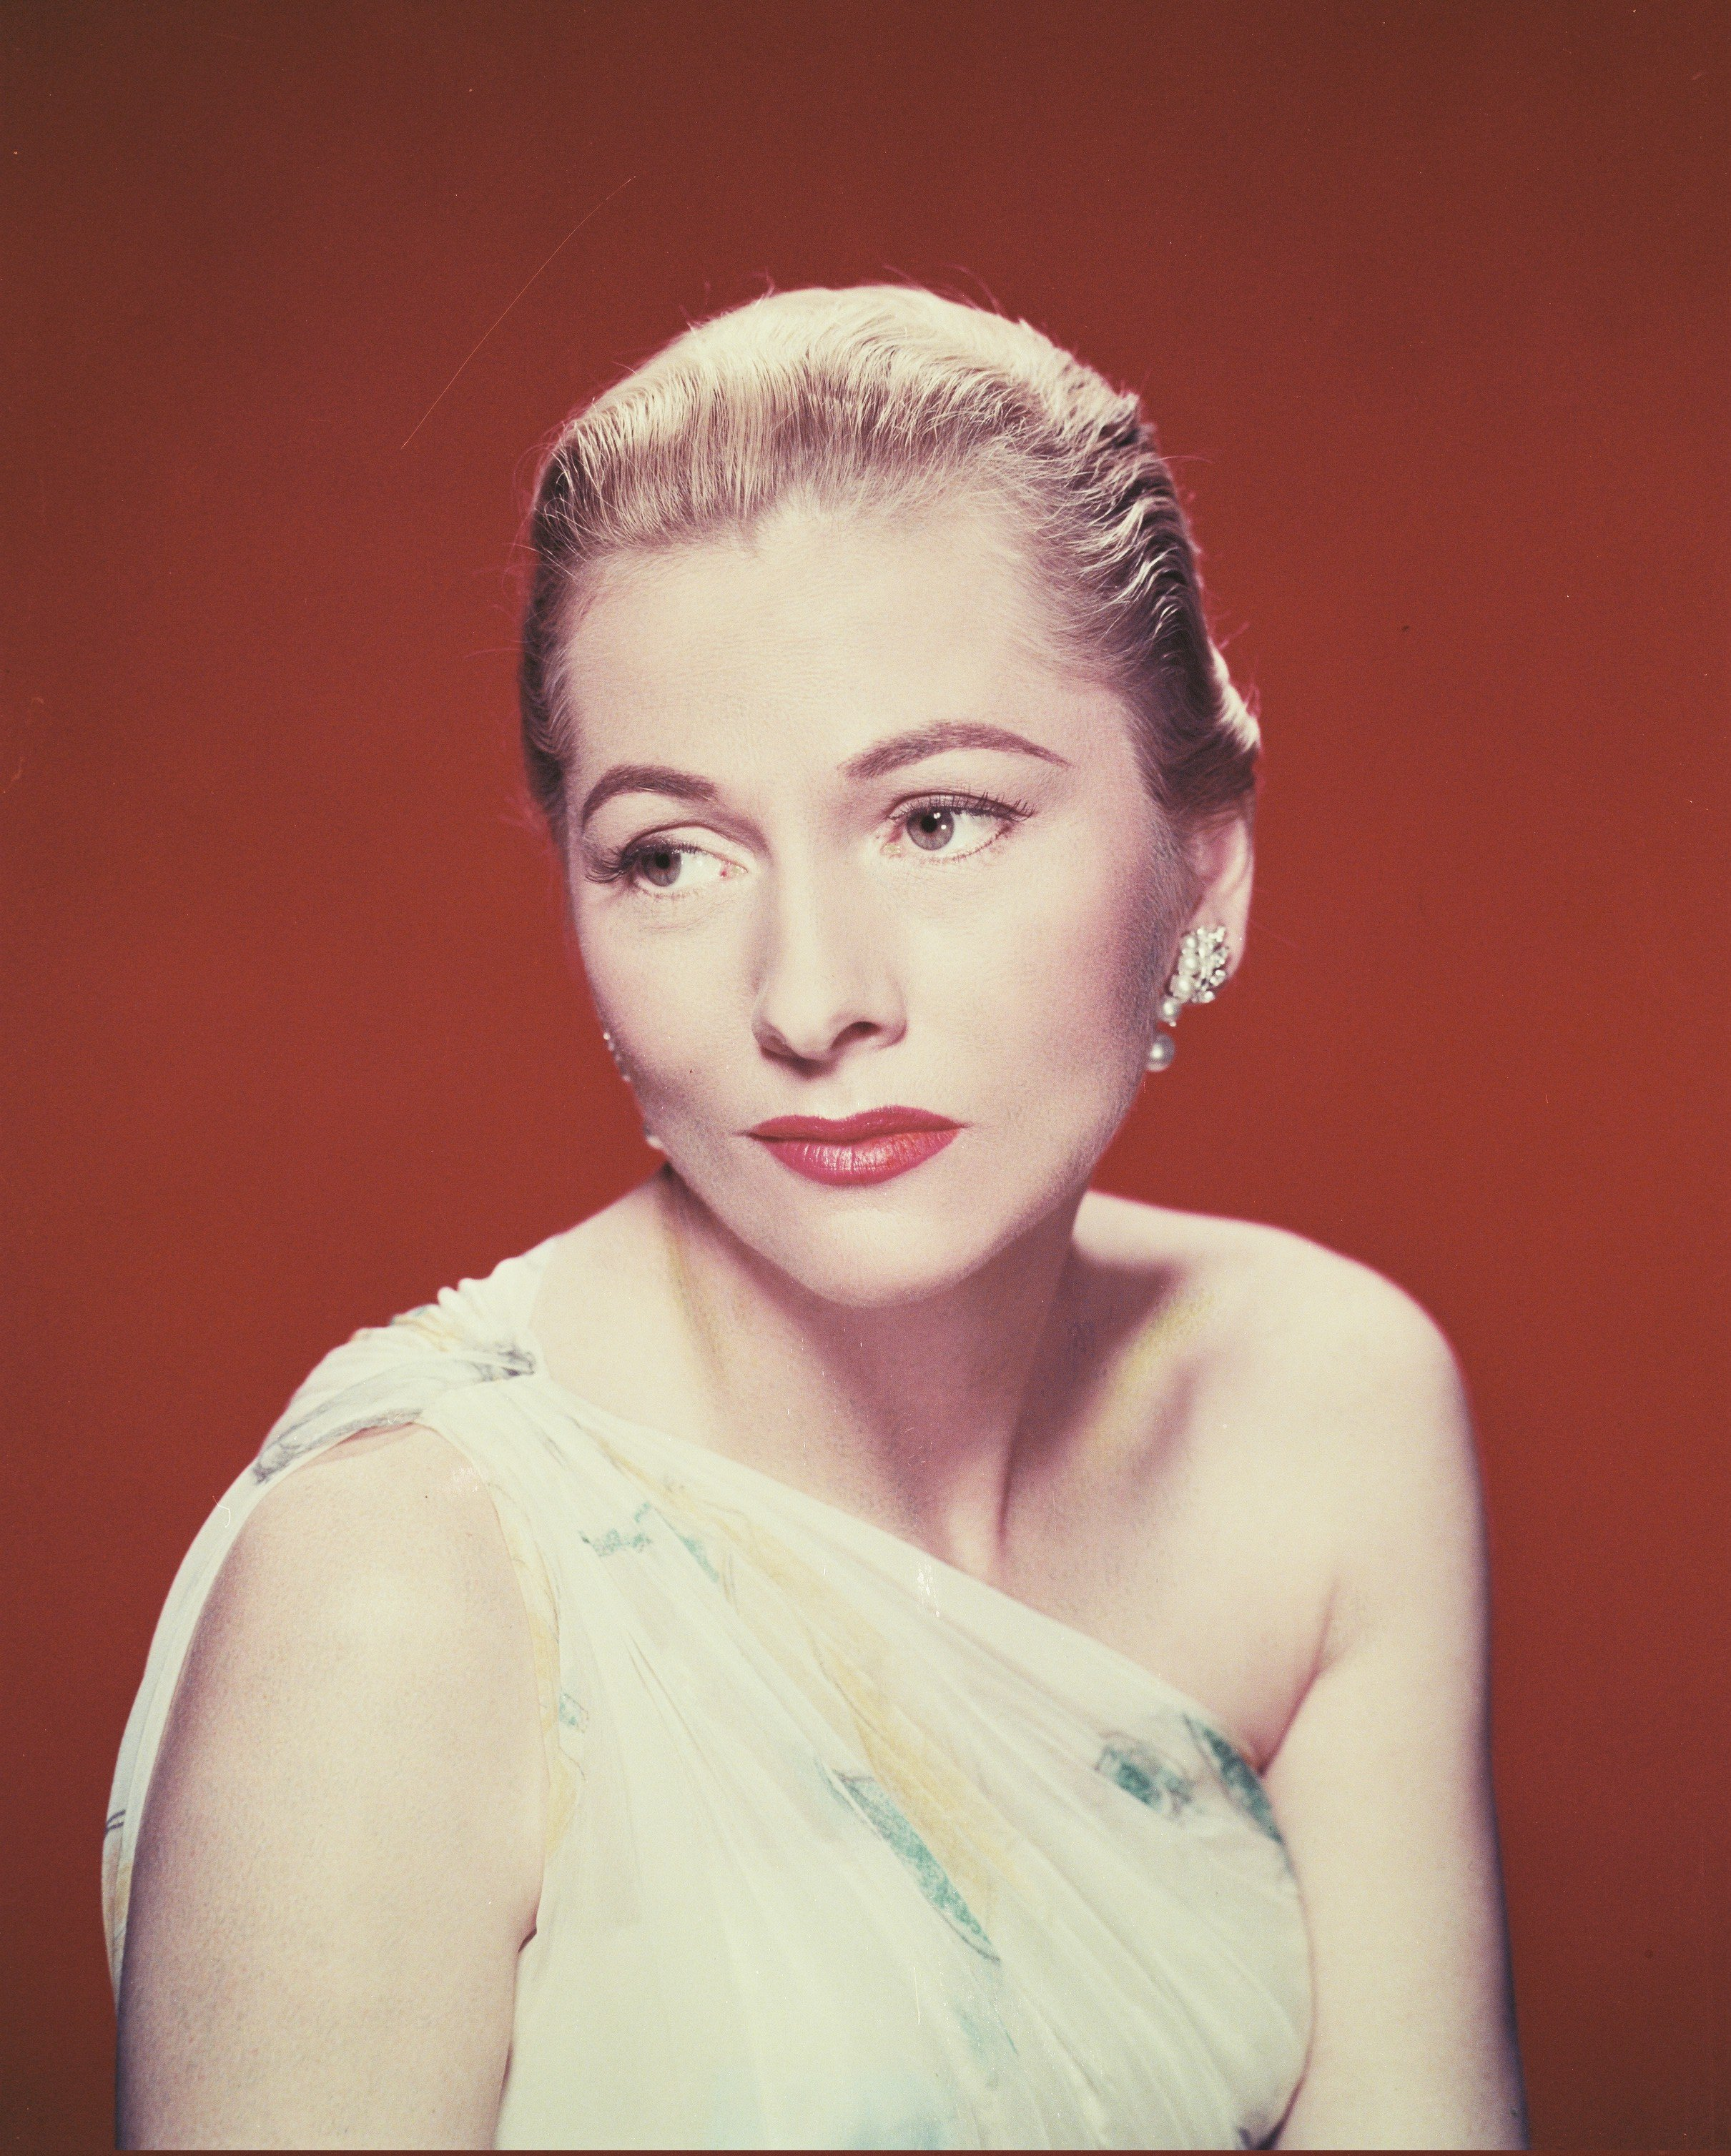 Image Source: Getty Images/Silver Screen Collection/Fontaine wearing a white assymetric top in a studio portrait, circa 1940.